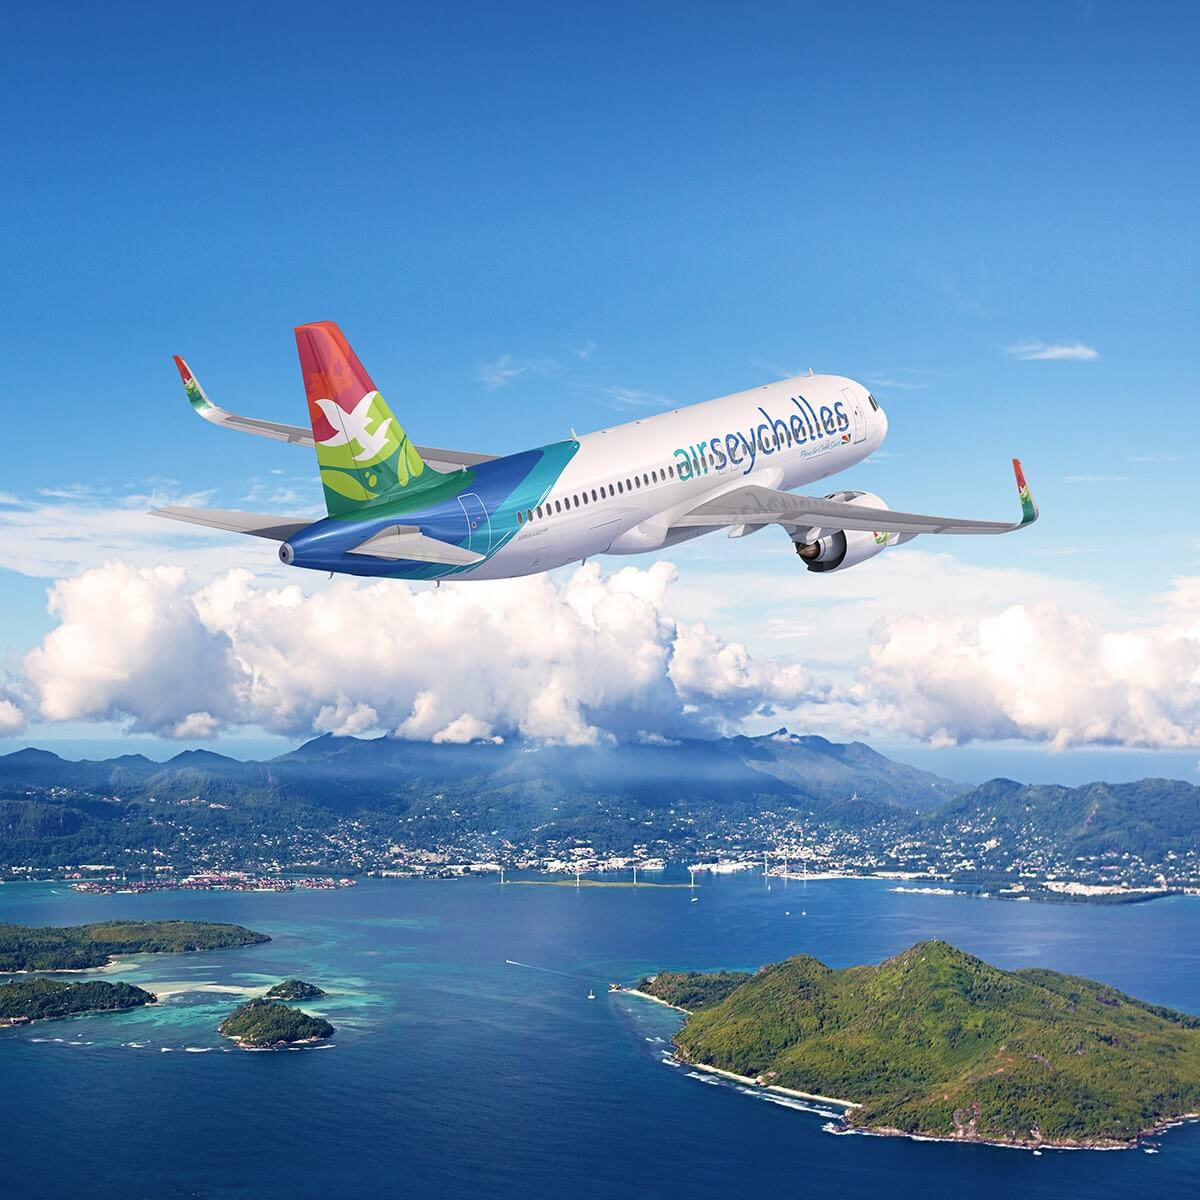 Air Seychelles: First airline to receive A320neo in Africa